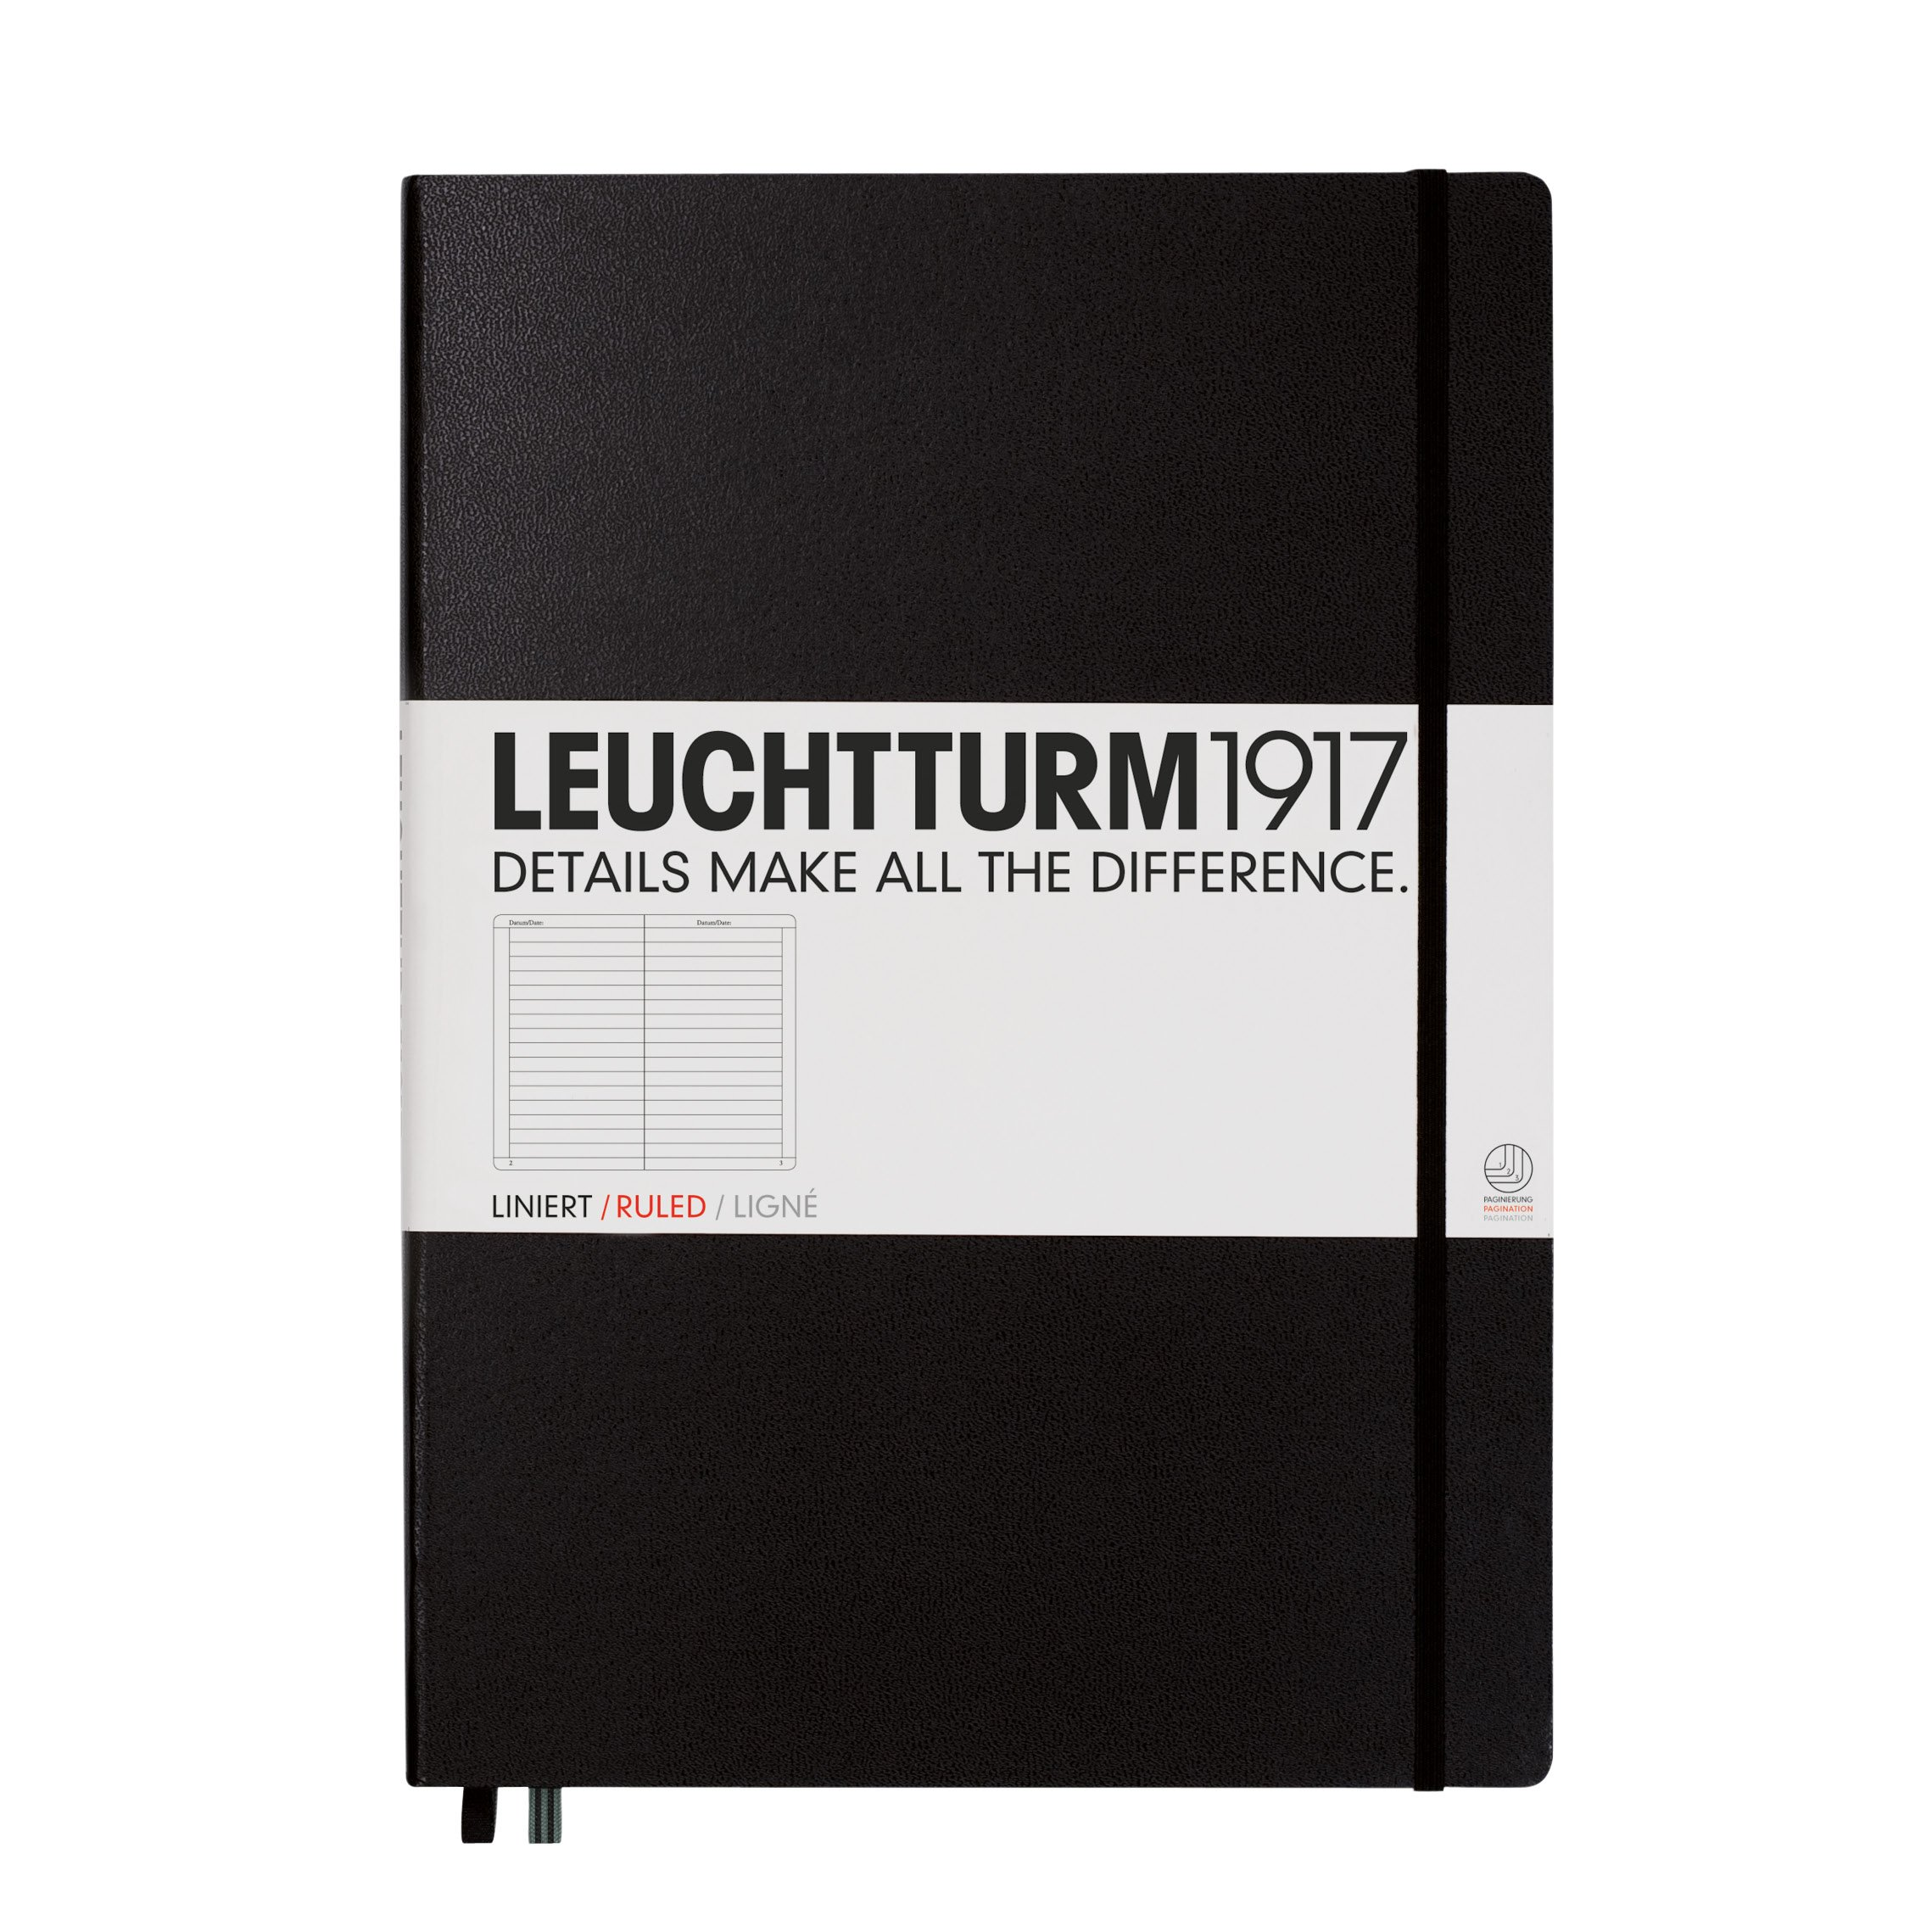 Leuchtturm1917 Master A4 Plus Ruled Hardcover Notebook- 233 Numbered Pages, Black by LEUCHTTURM1917